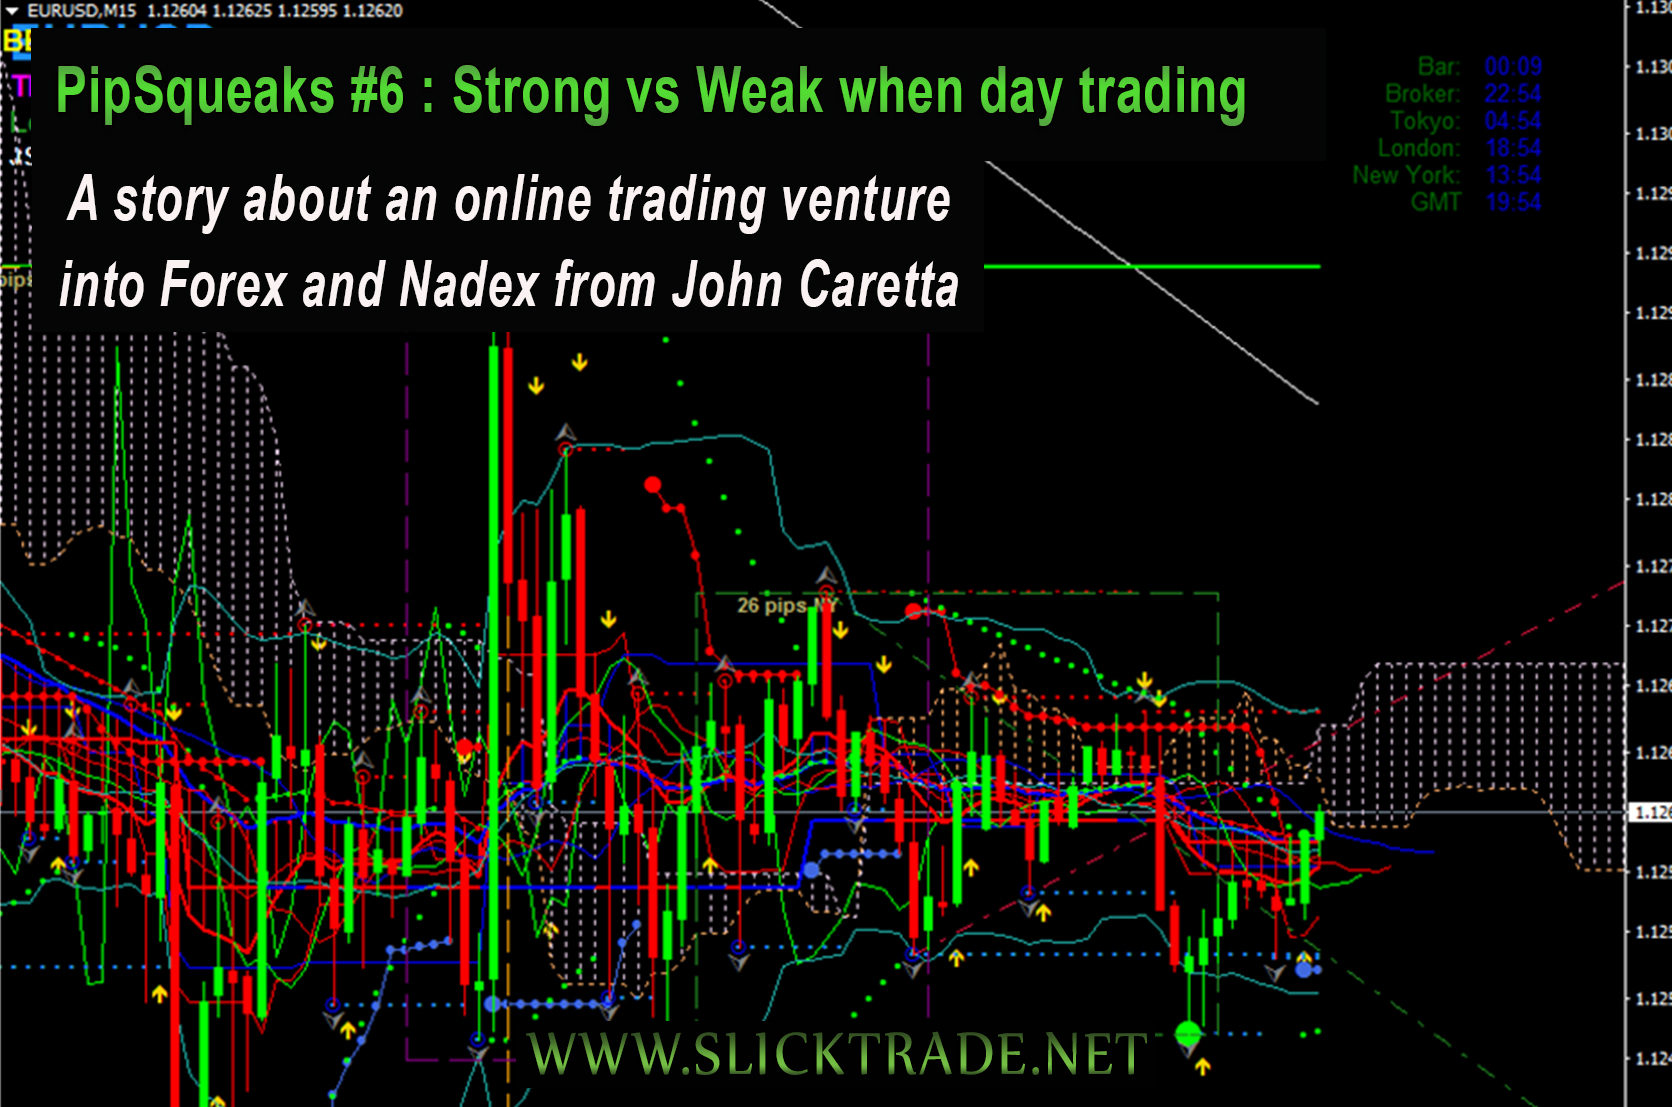 Pipsqueaks 6 Strong vs Weak when Day Trading Slick Trade Online Trading Academy Forex Nadex